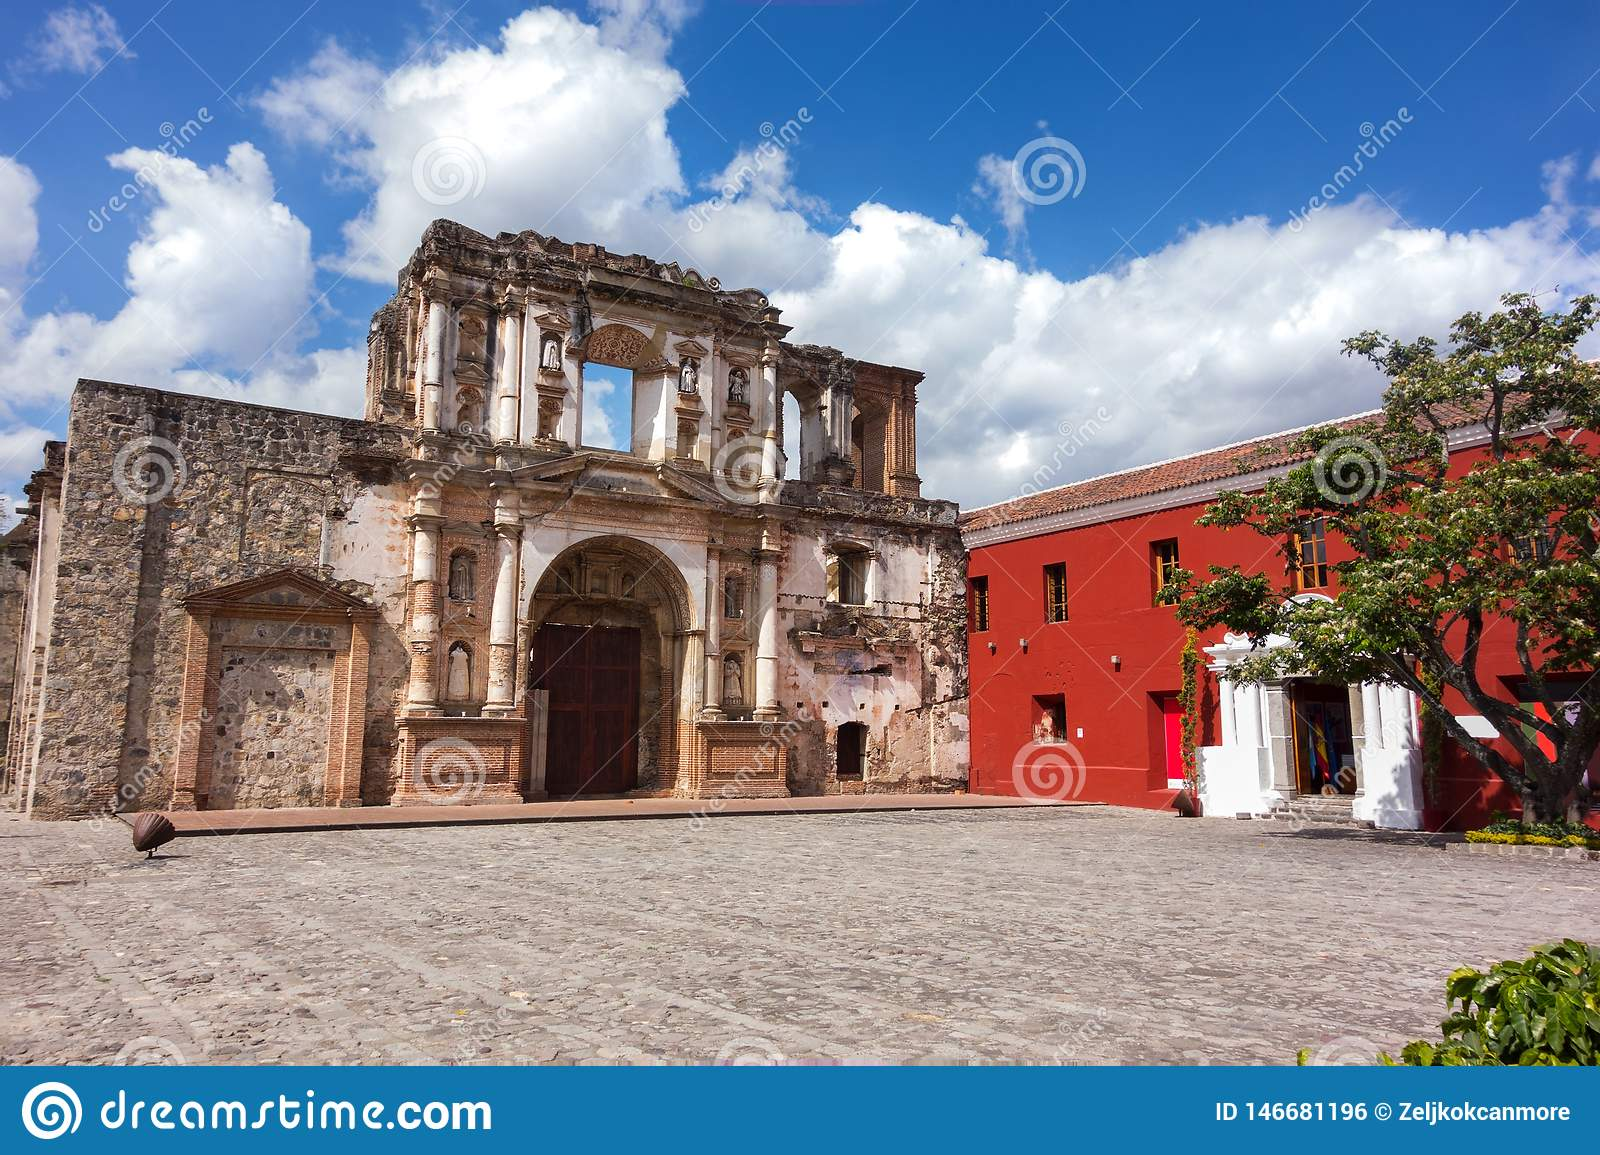 Ibero-American Center Spanish Cooperation and Colonial Style Building Ruin Old City Antigua Guatemala